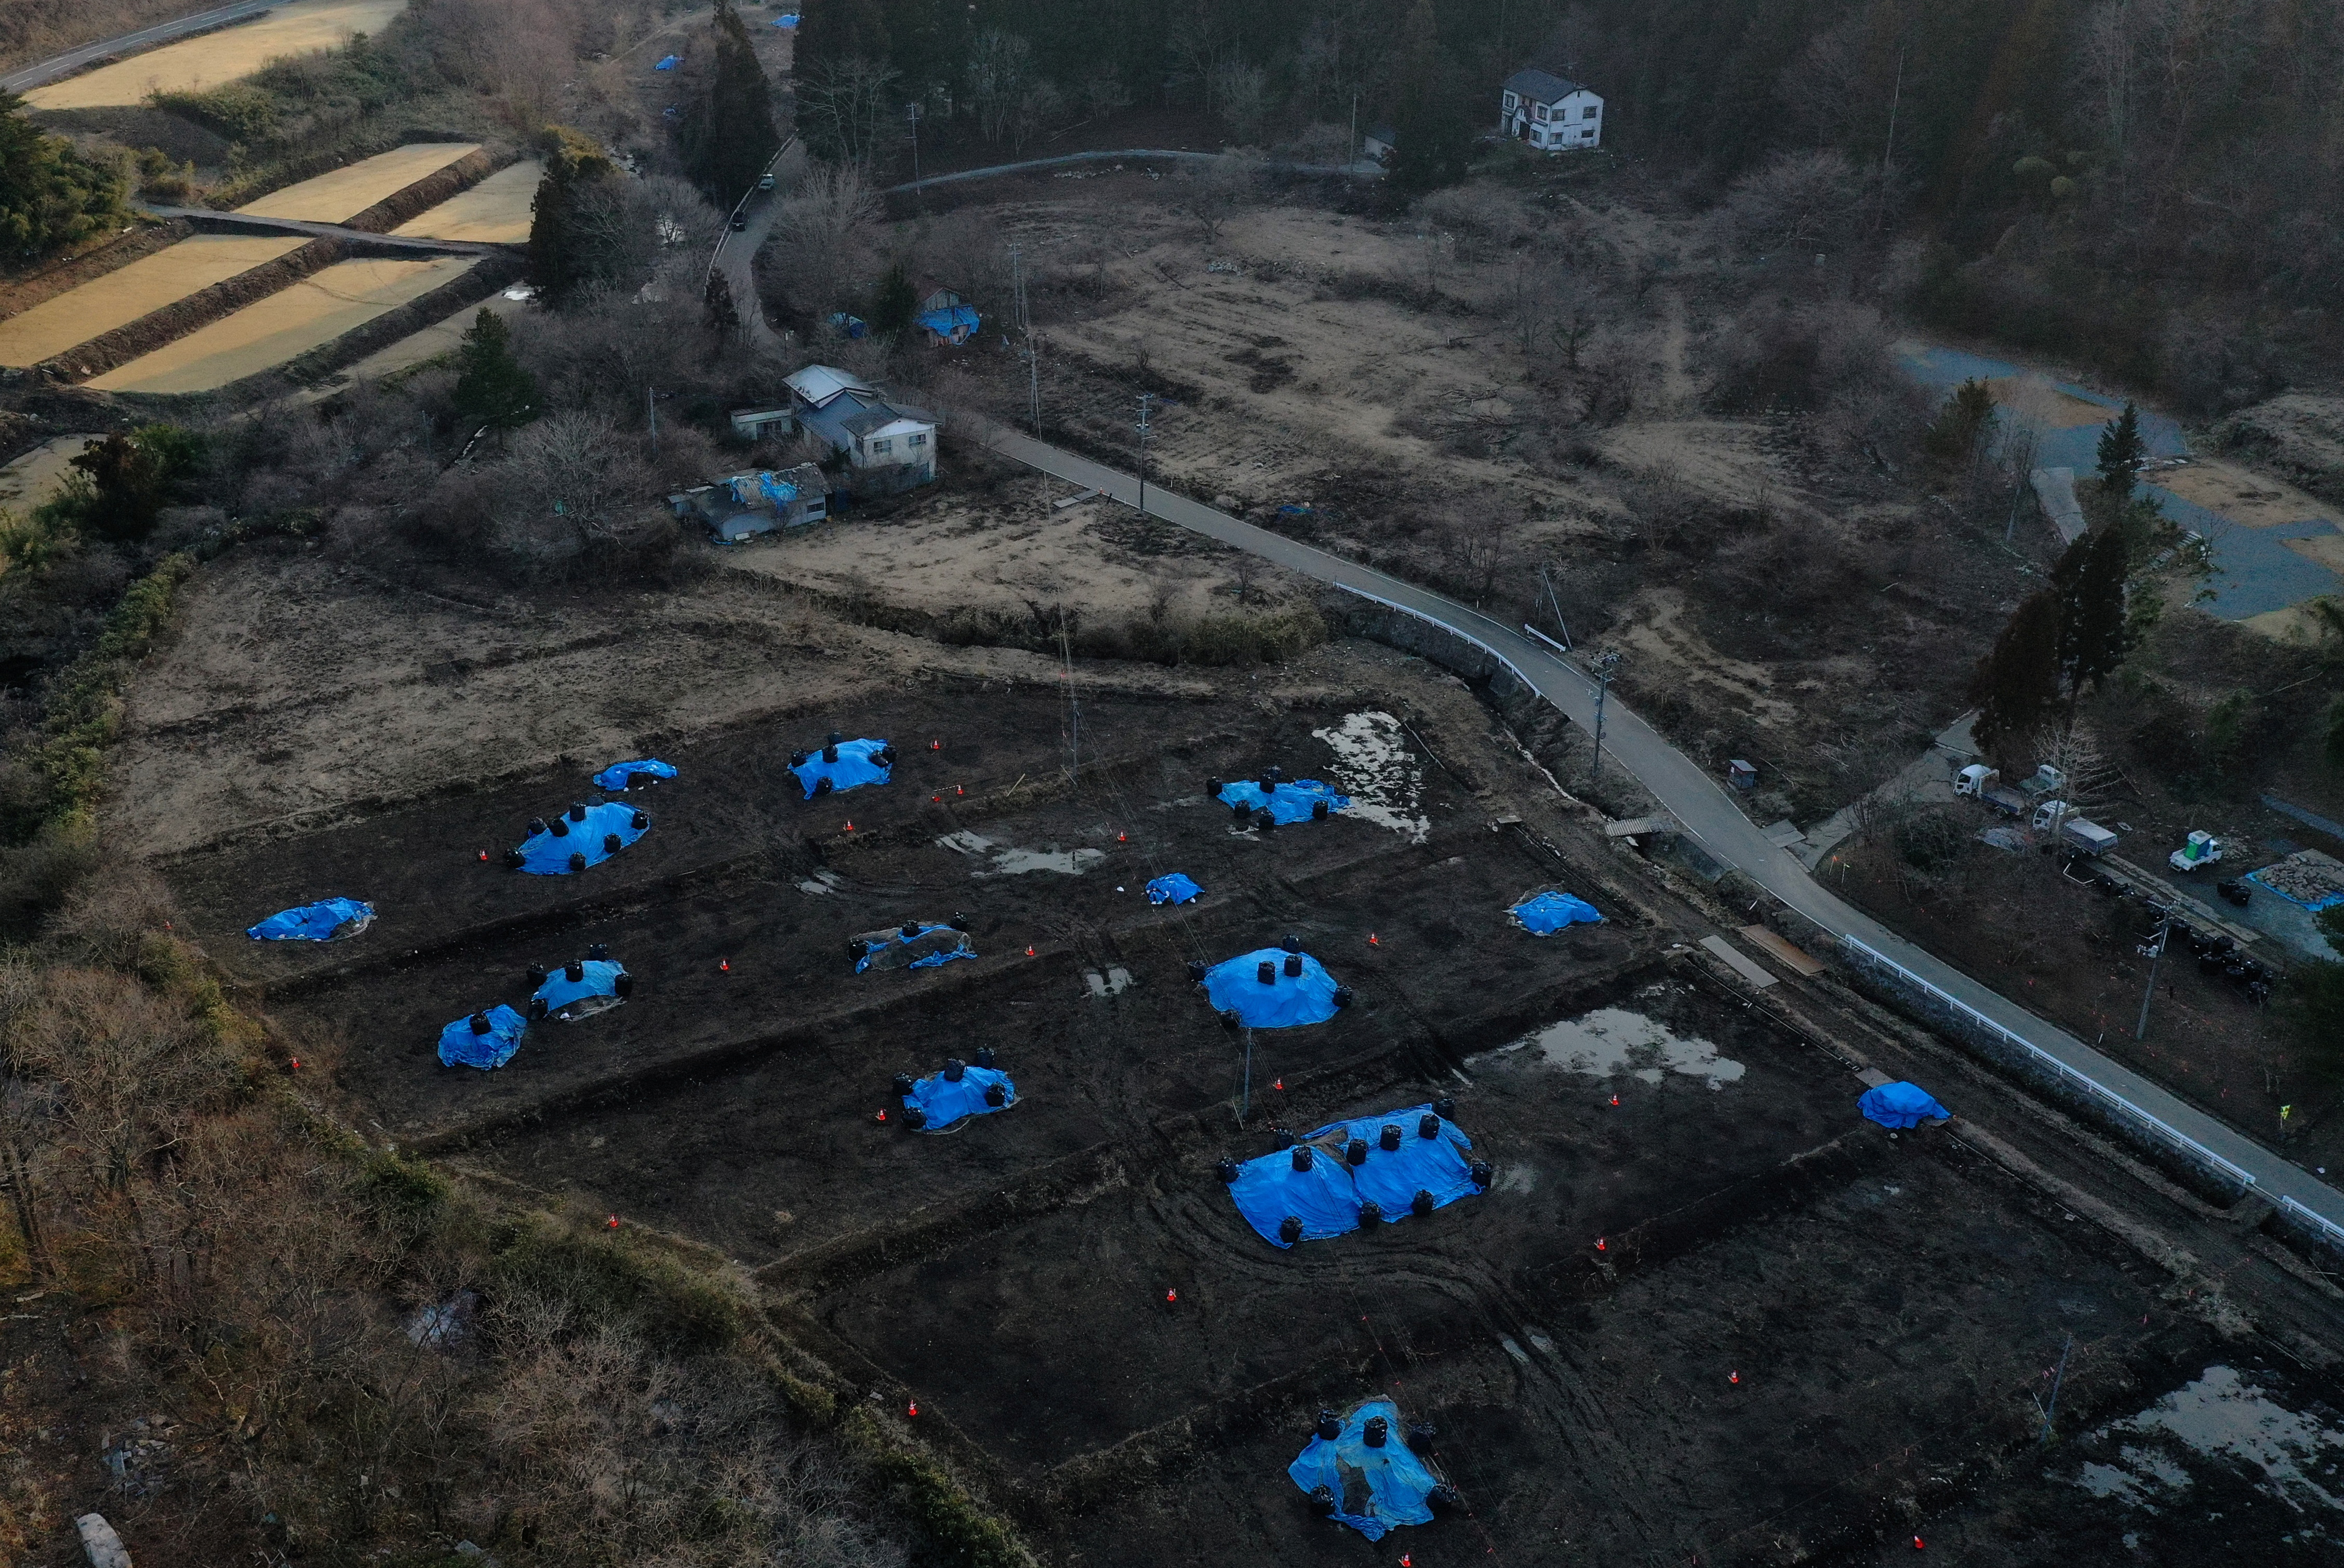 An aerial view shows Sakae Kato's house standing close to a field which is being decontaminated in a restricted zone in Namie, Fukushima Prefecture, Japan, February 21, 2021. Kato looks after 41 cats in his home and another empty building on his property. A decade ago, Kato stayed behind to rescue cats abandoned by neighbours who fled the radiation clouds belching from the nearby Fukushima nuclear plant. He won't leave.